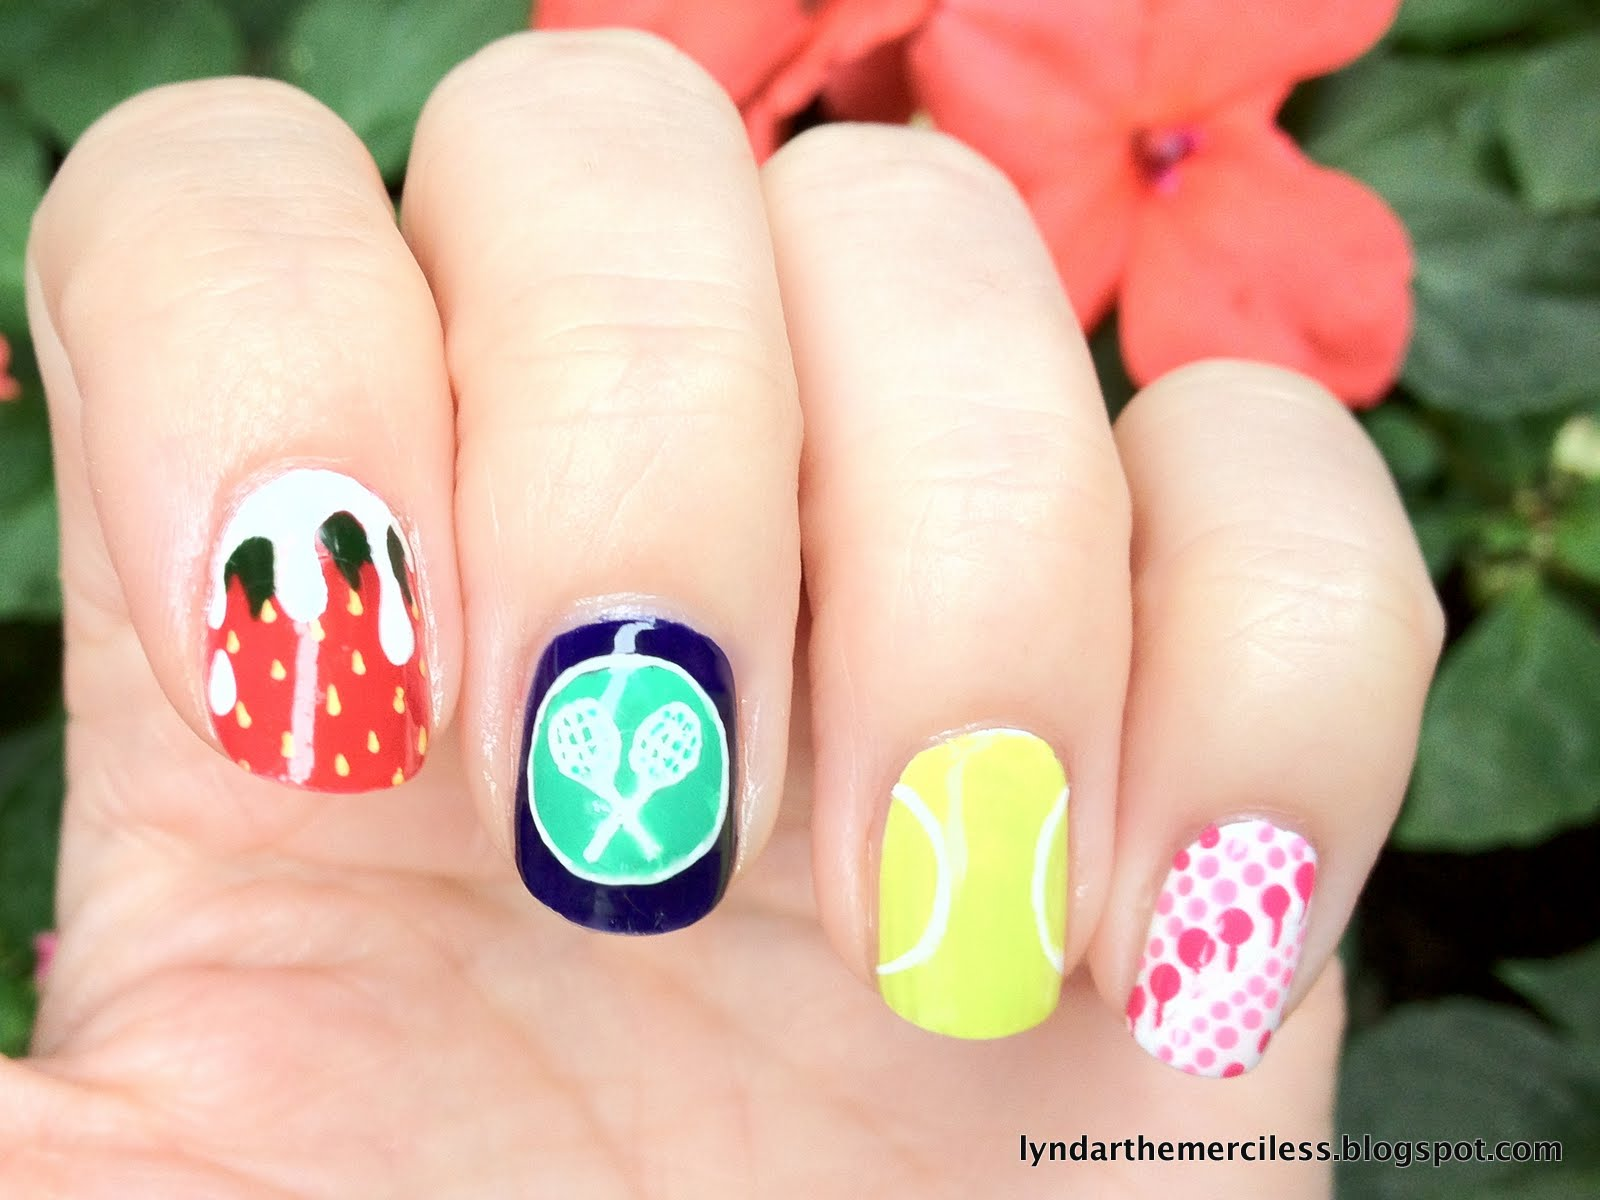 Lyndar the merciless mani monday grand slam the wimbledon crossed rackets logo a tennis ball and very randomly the wallpaper of the evian vip suite by ana maria design for this set of nails prinsesfo Choice Image